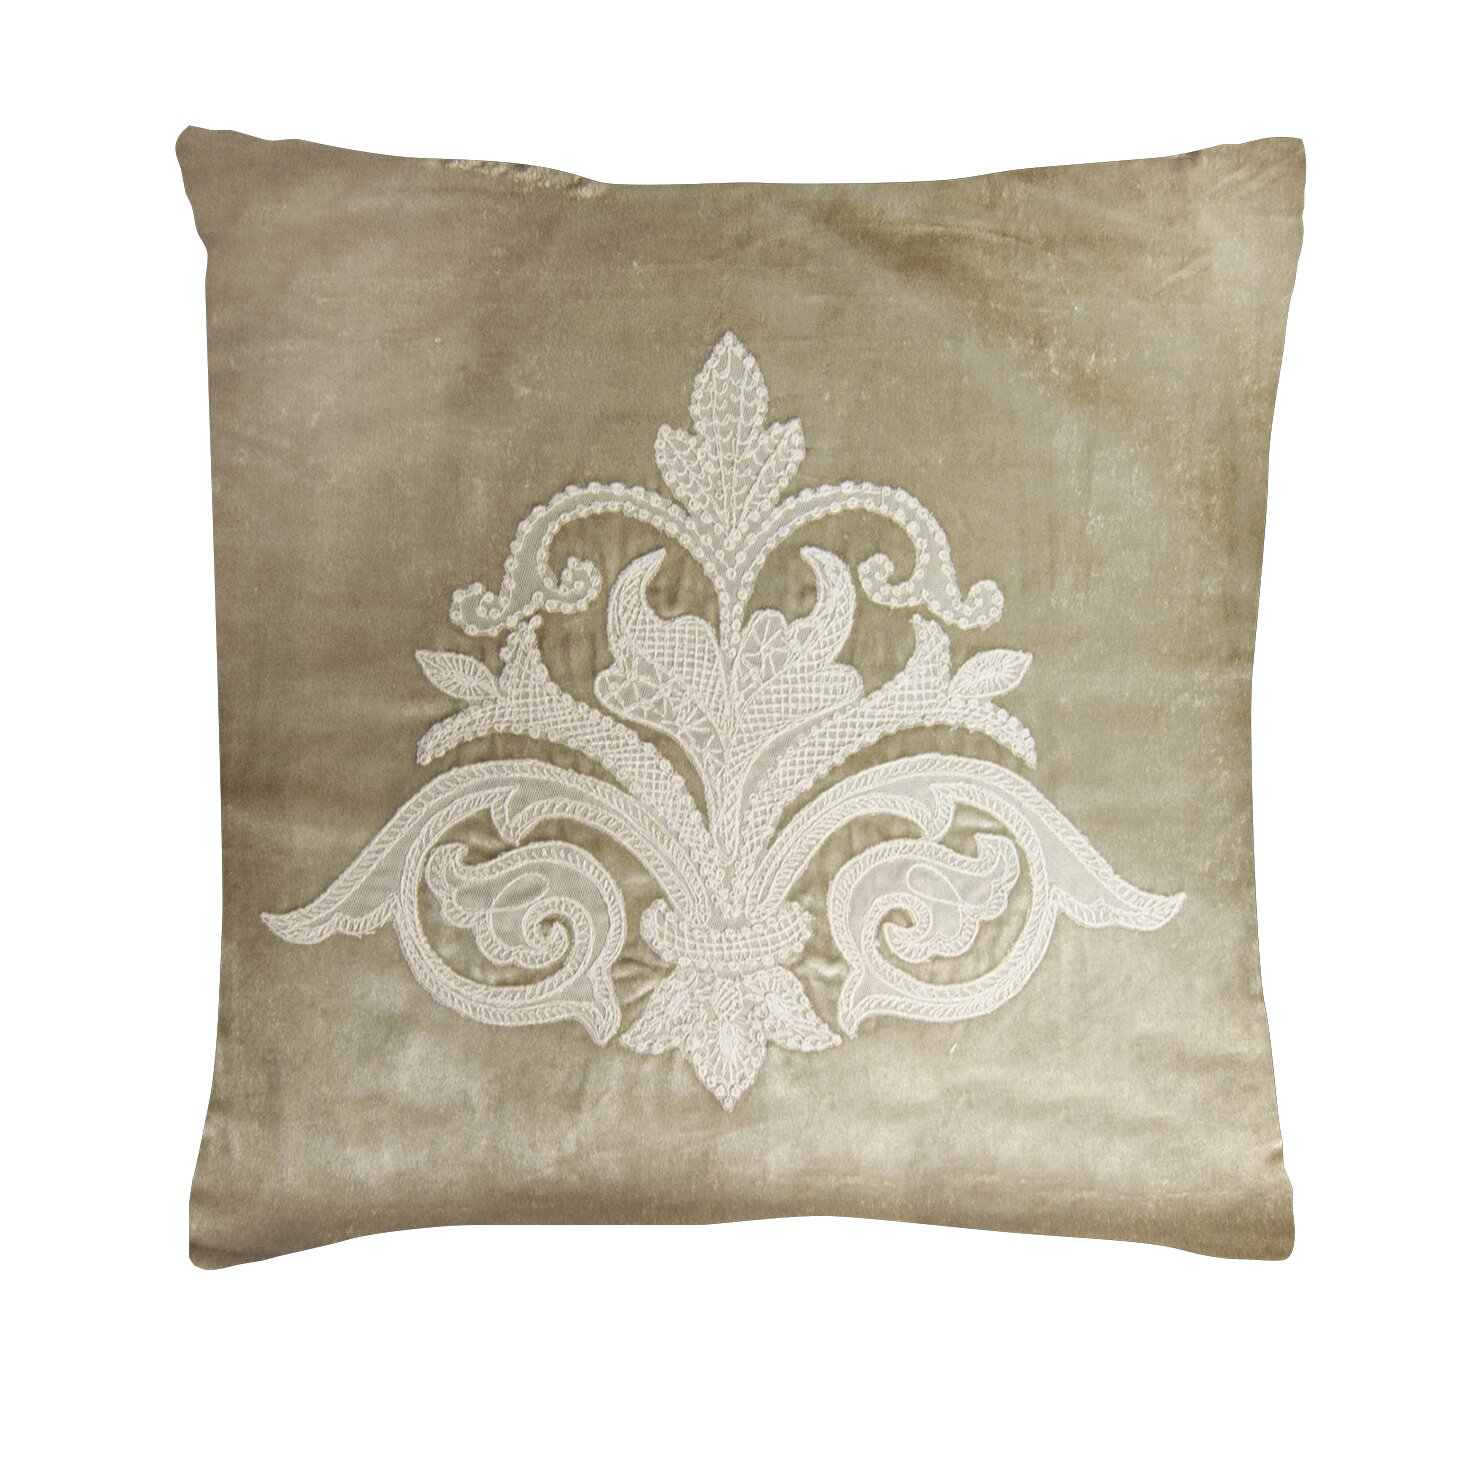 Throw Pillows With Lace : Heritage Lace Downton Abbey Throw Pillow & Reviews Wayfair